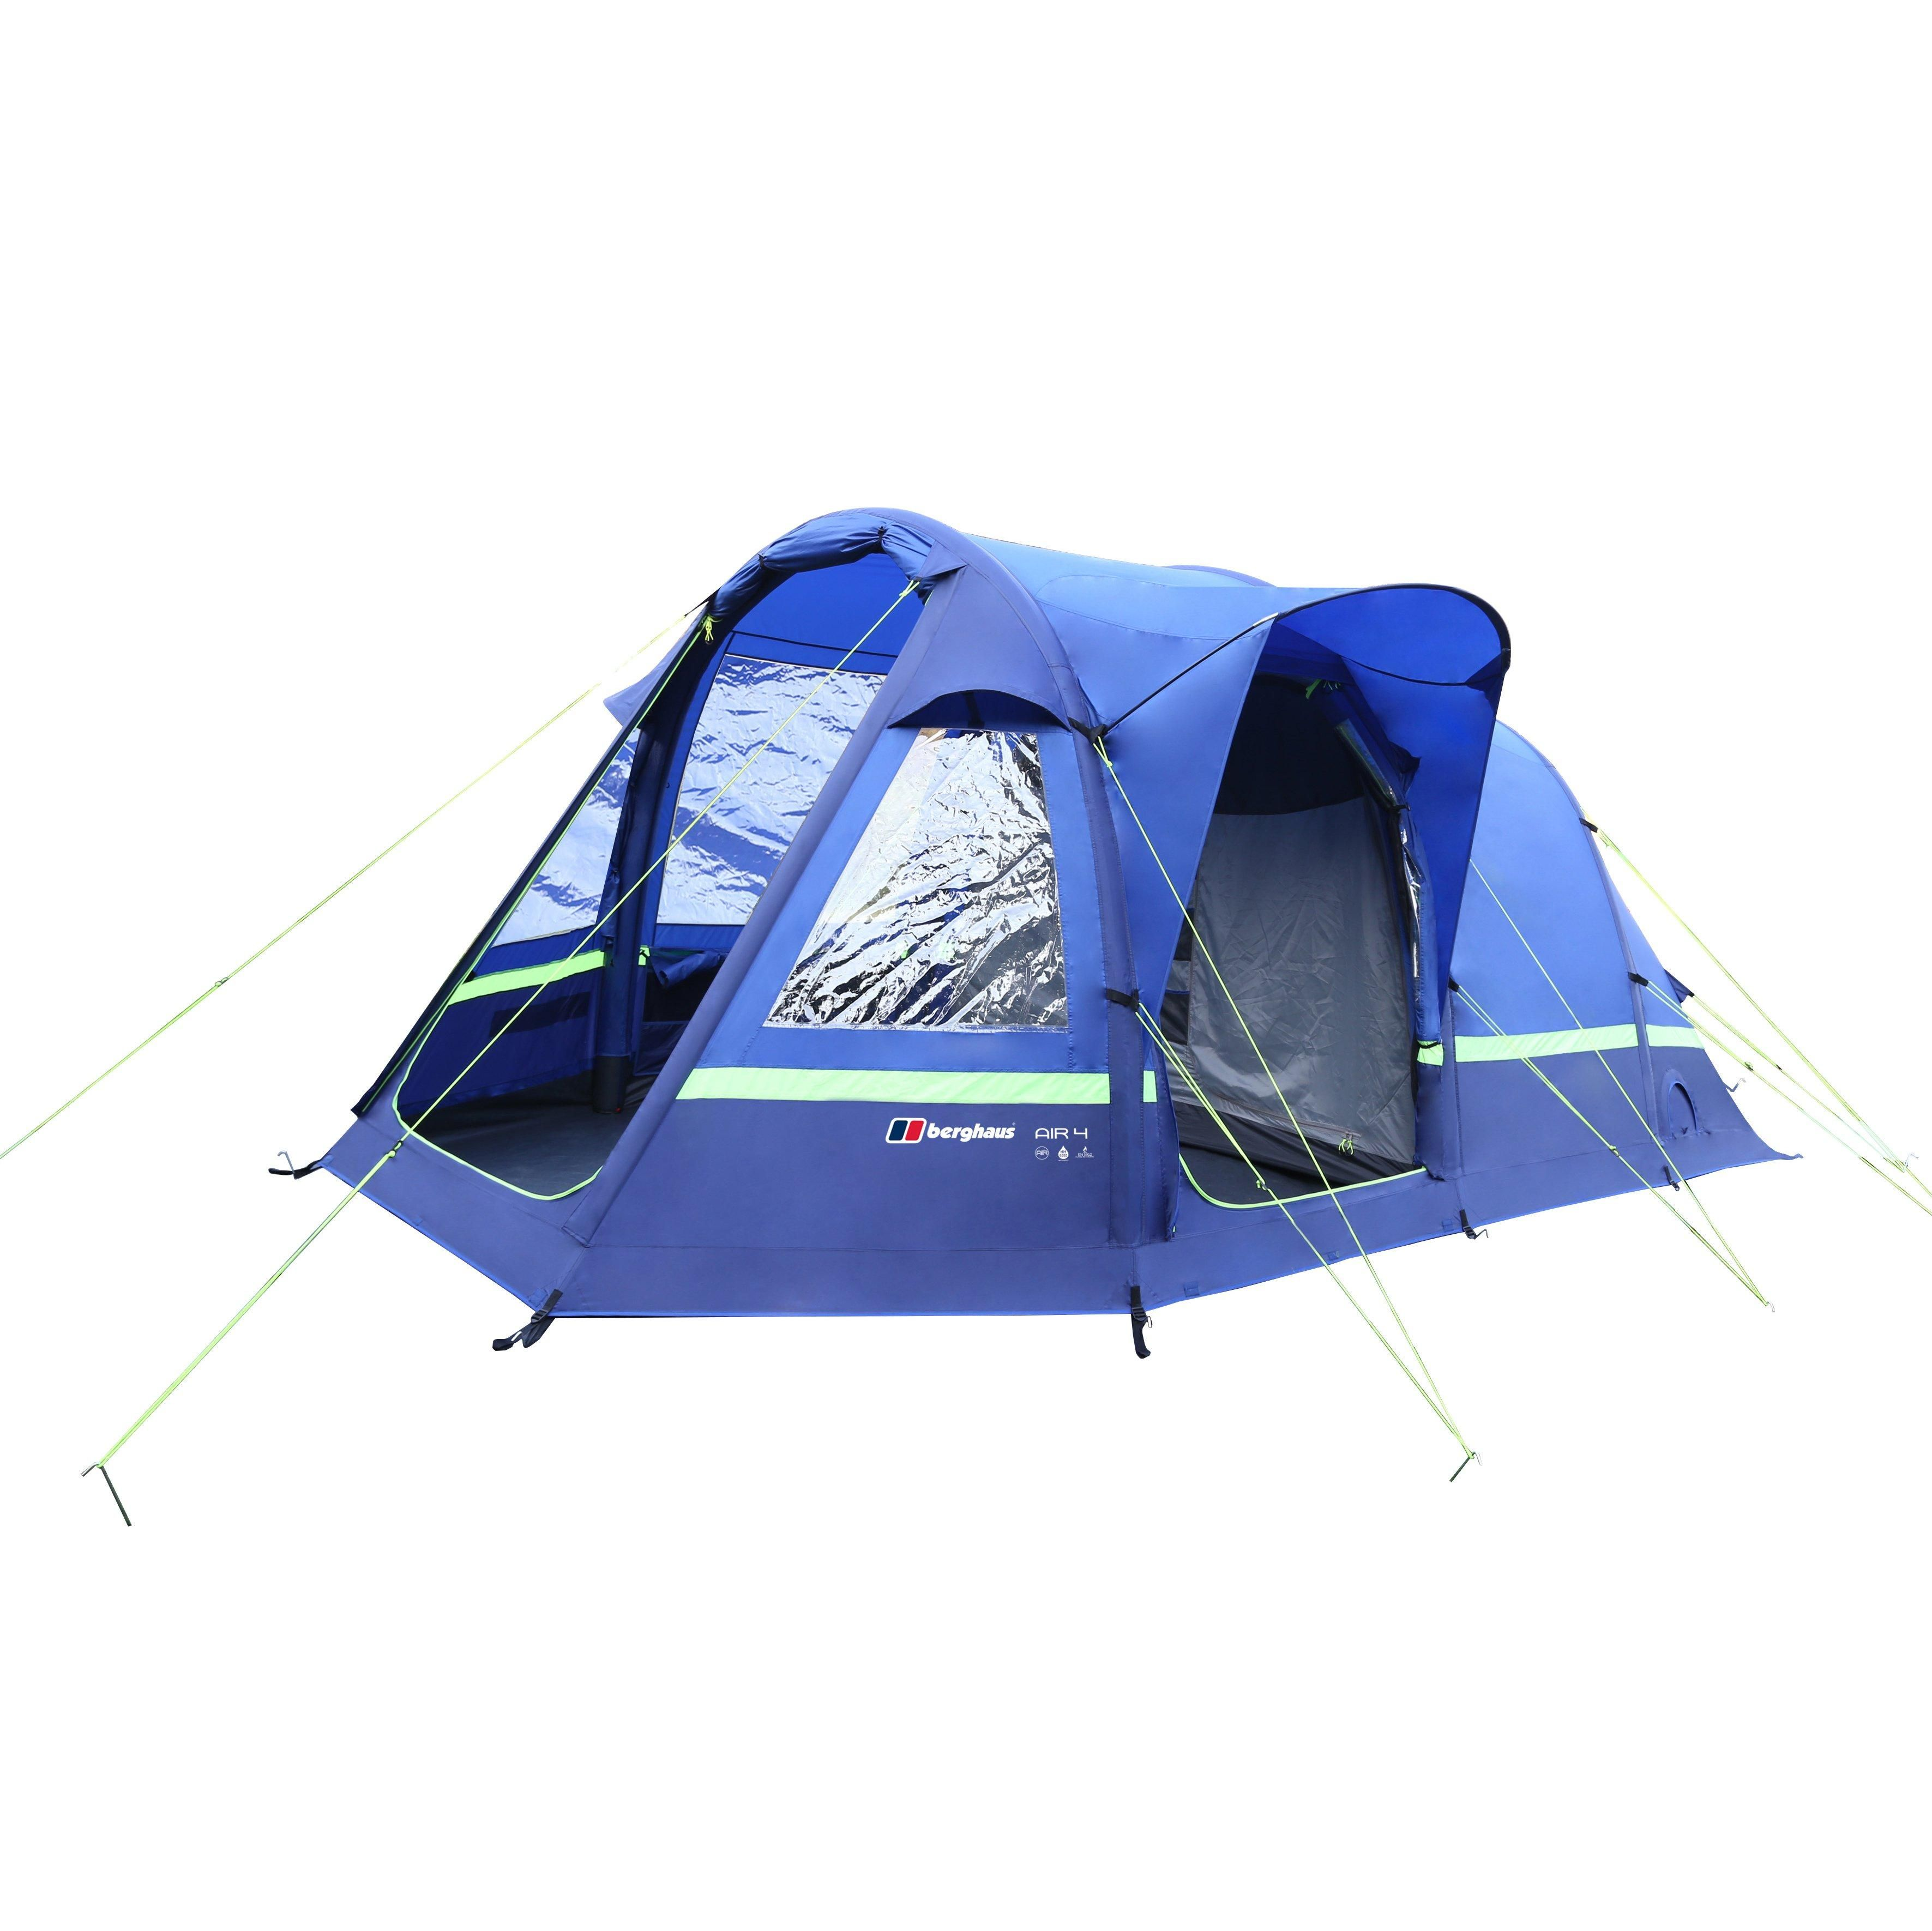 Take the stress out of family c&ing with the revolutionary Air 4 Inflatable family tent from Berghaus which pitches in minutes.  sc 1 st  Pinterest & Air 4 Inflatable Tent | Camping | Pinterest | Camping magazine ...